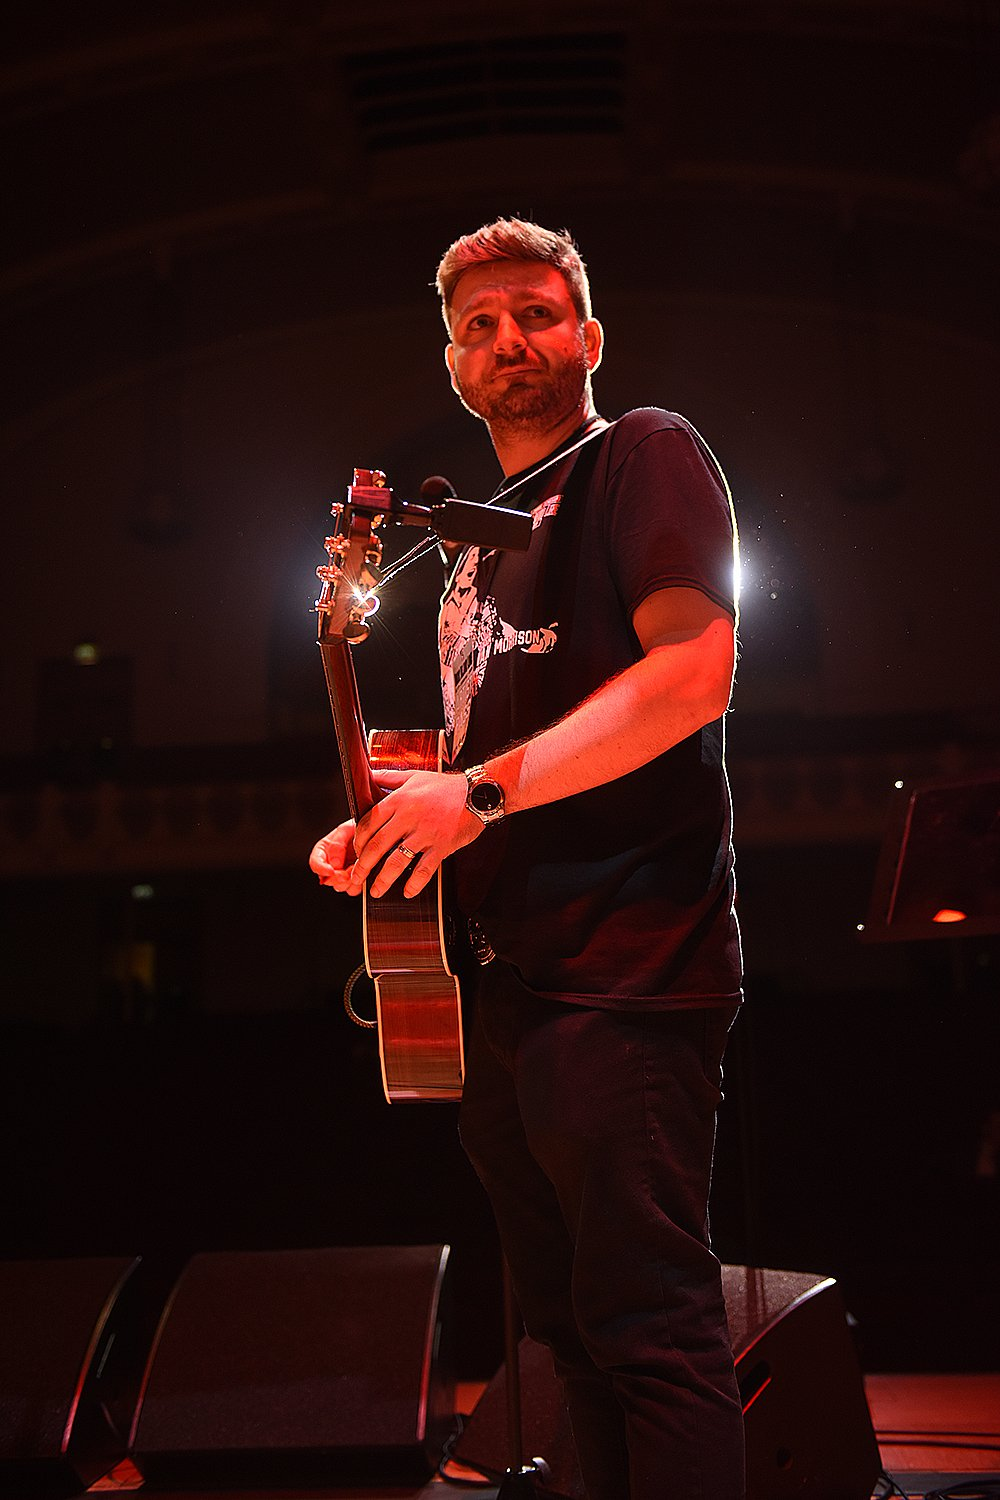 Peter Donegan on stage at London's Cadogan Hall